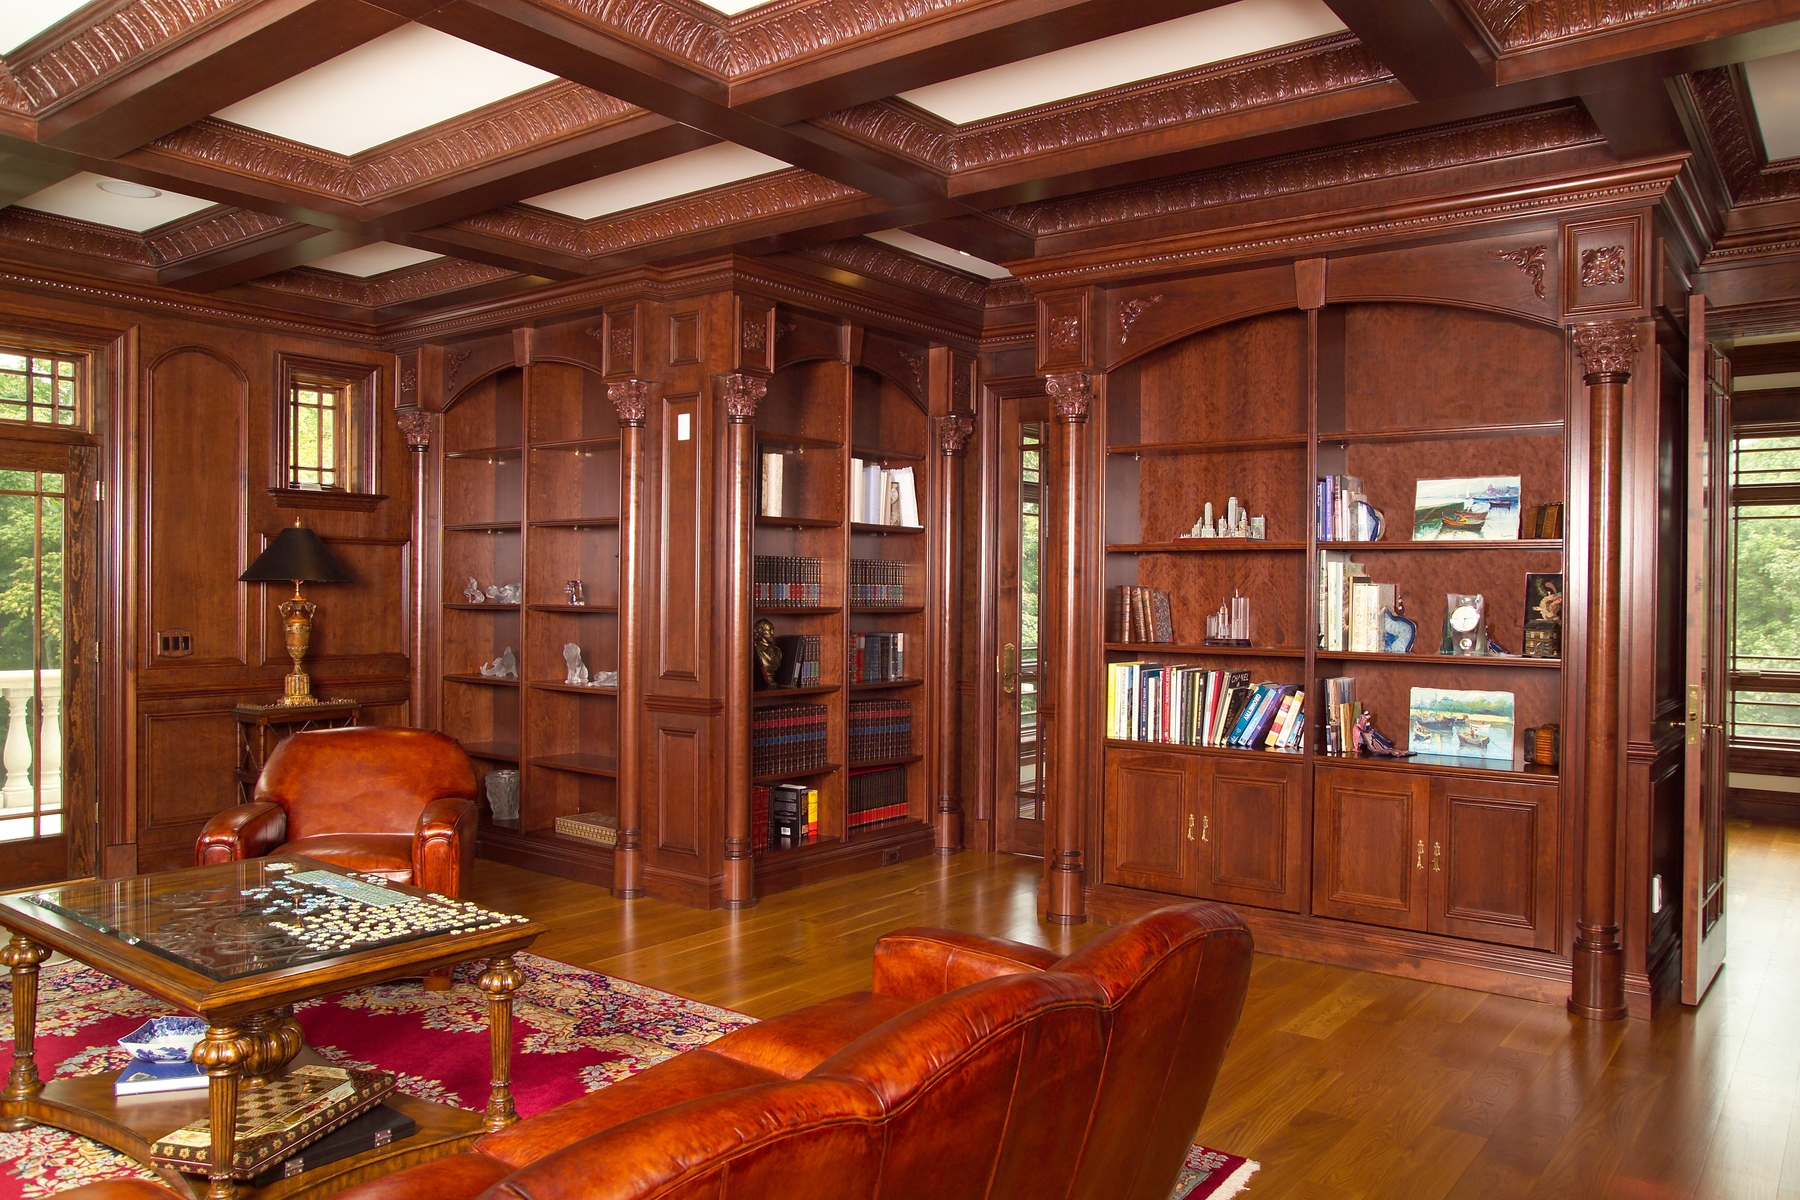 Classic Library Design With stunning wooden coffered ceiling and natural brown wood of book shelves plus wooden floor